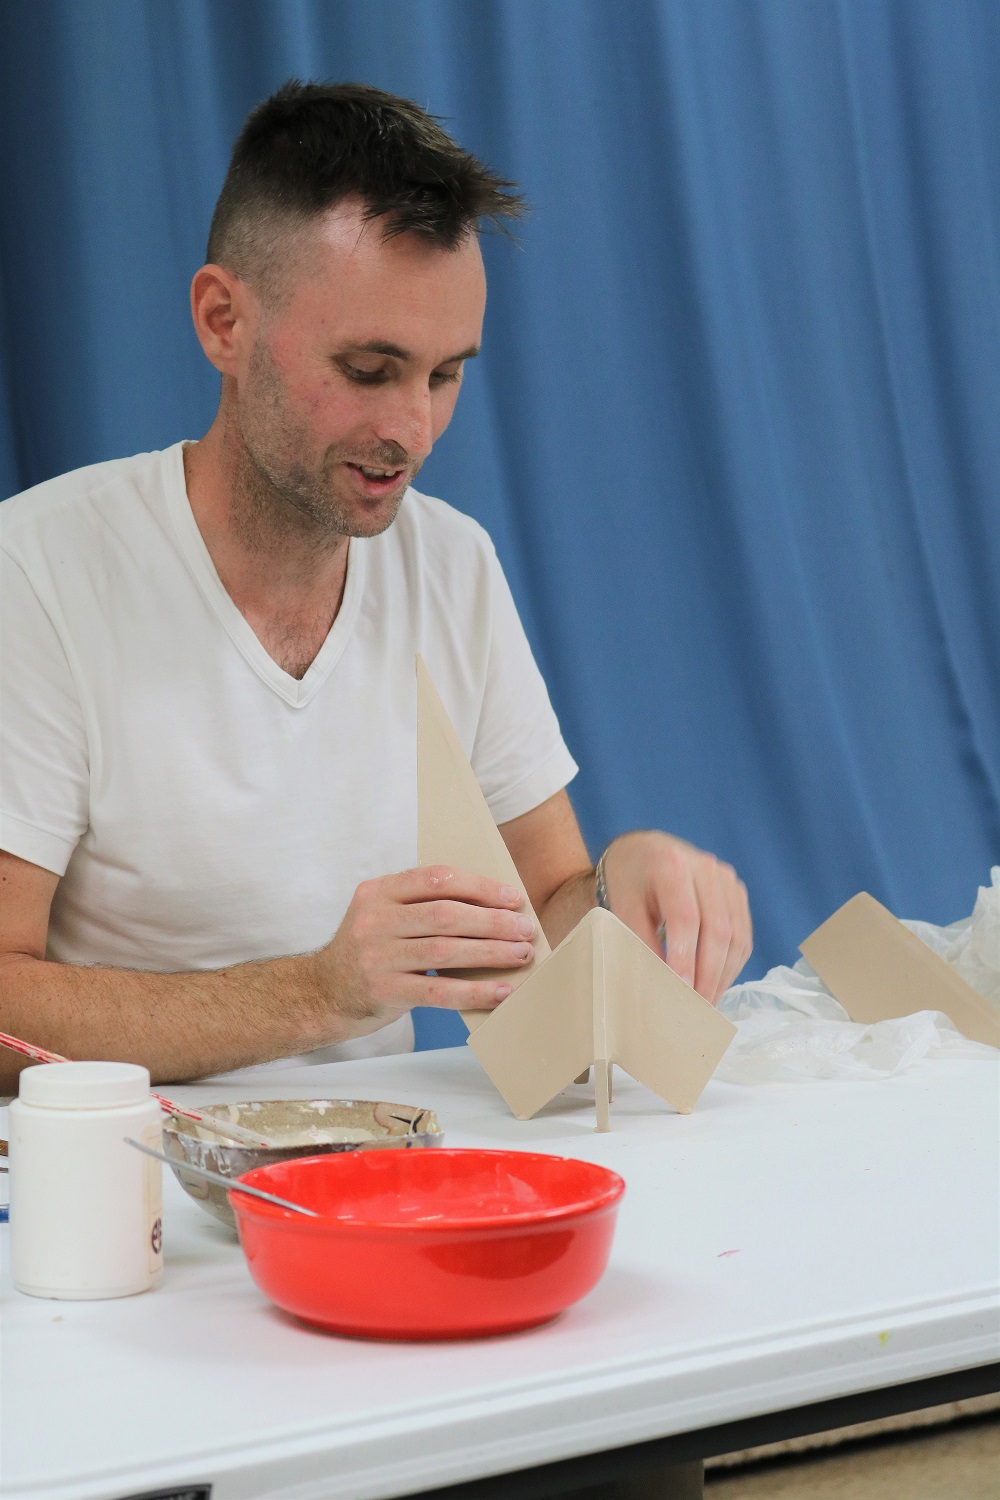 Tim Clarkson Workshop: origami inspired ceramics, Skepsi @ Malvern, November 2017